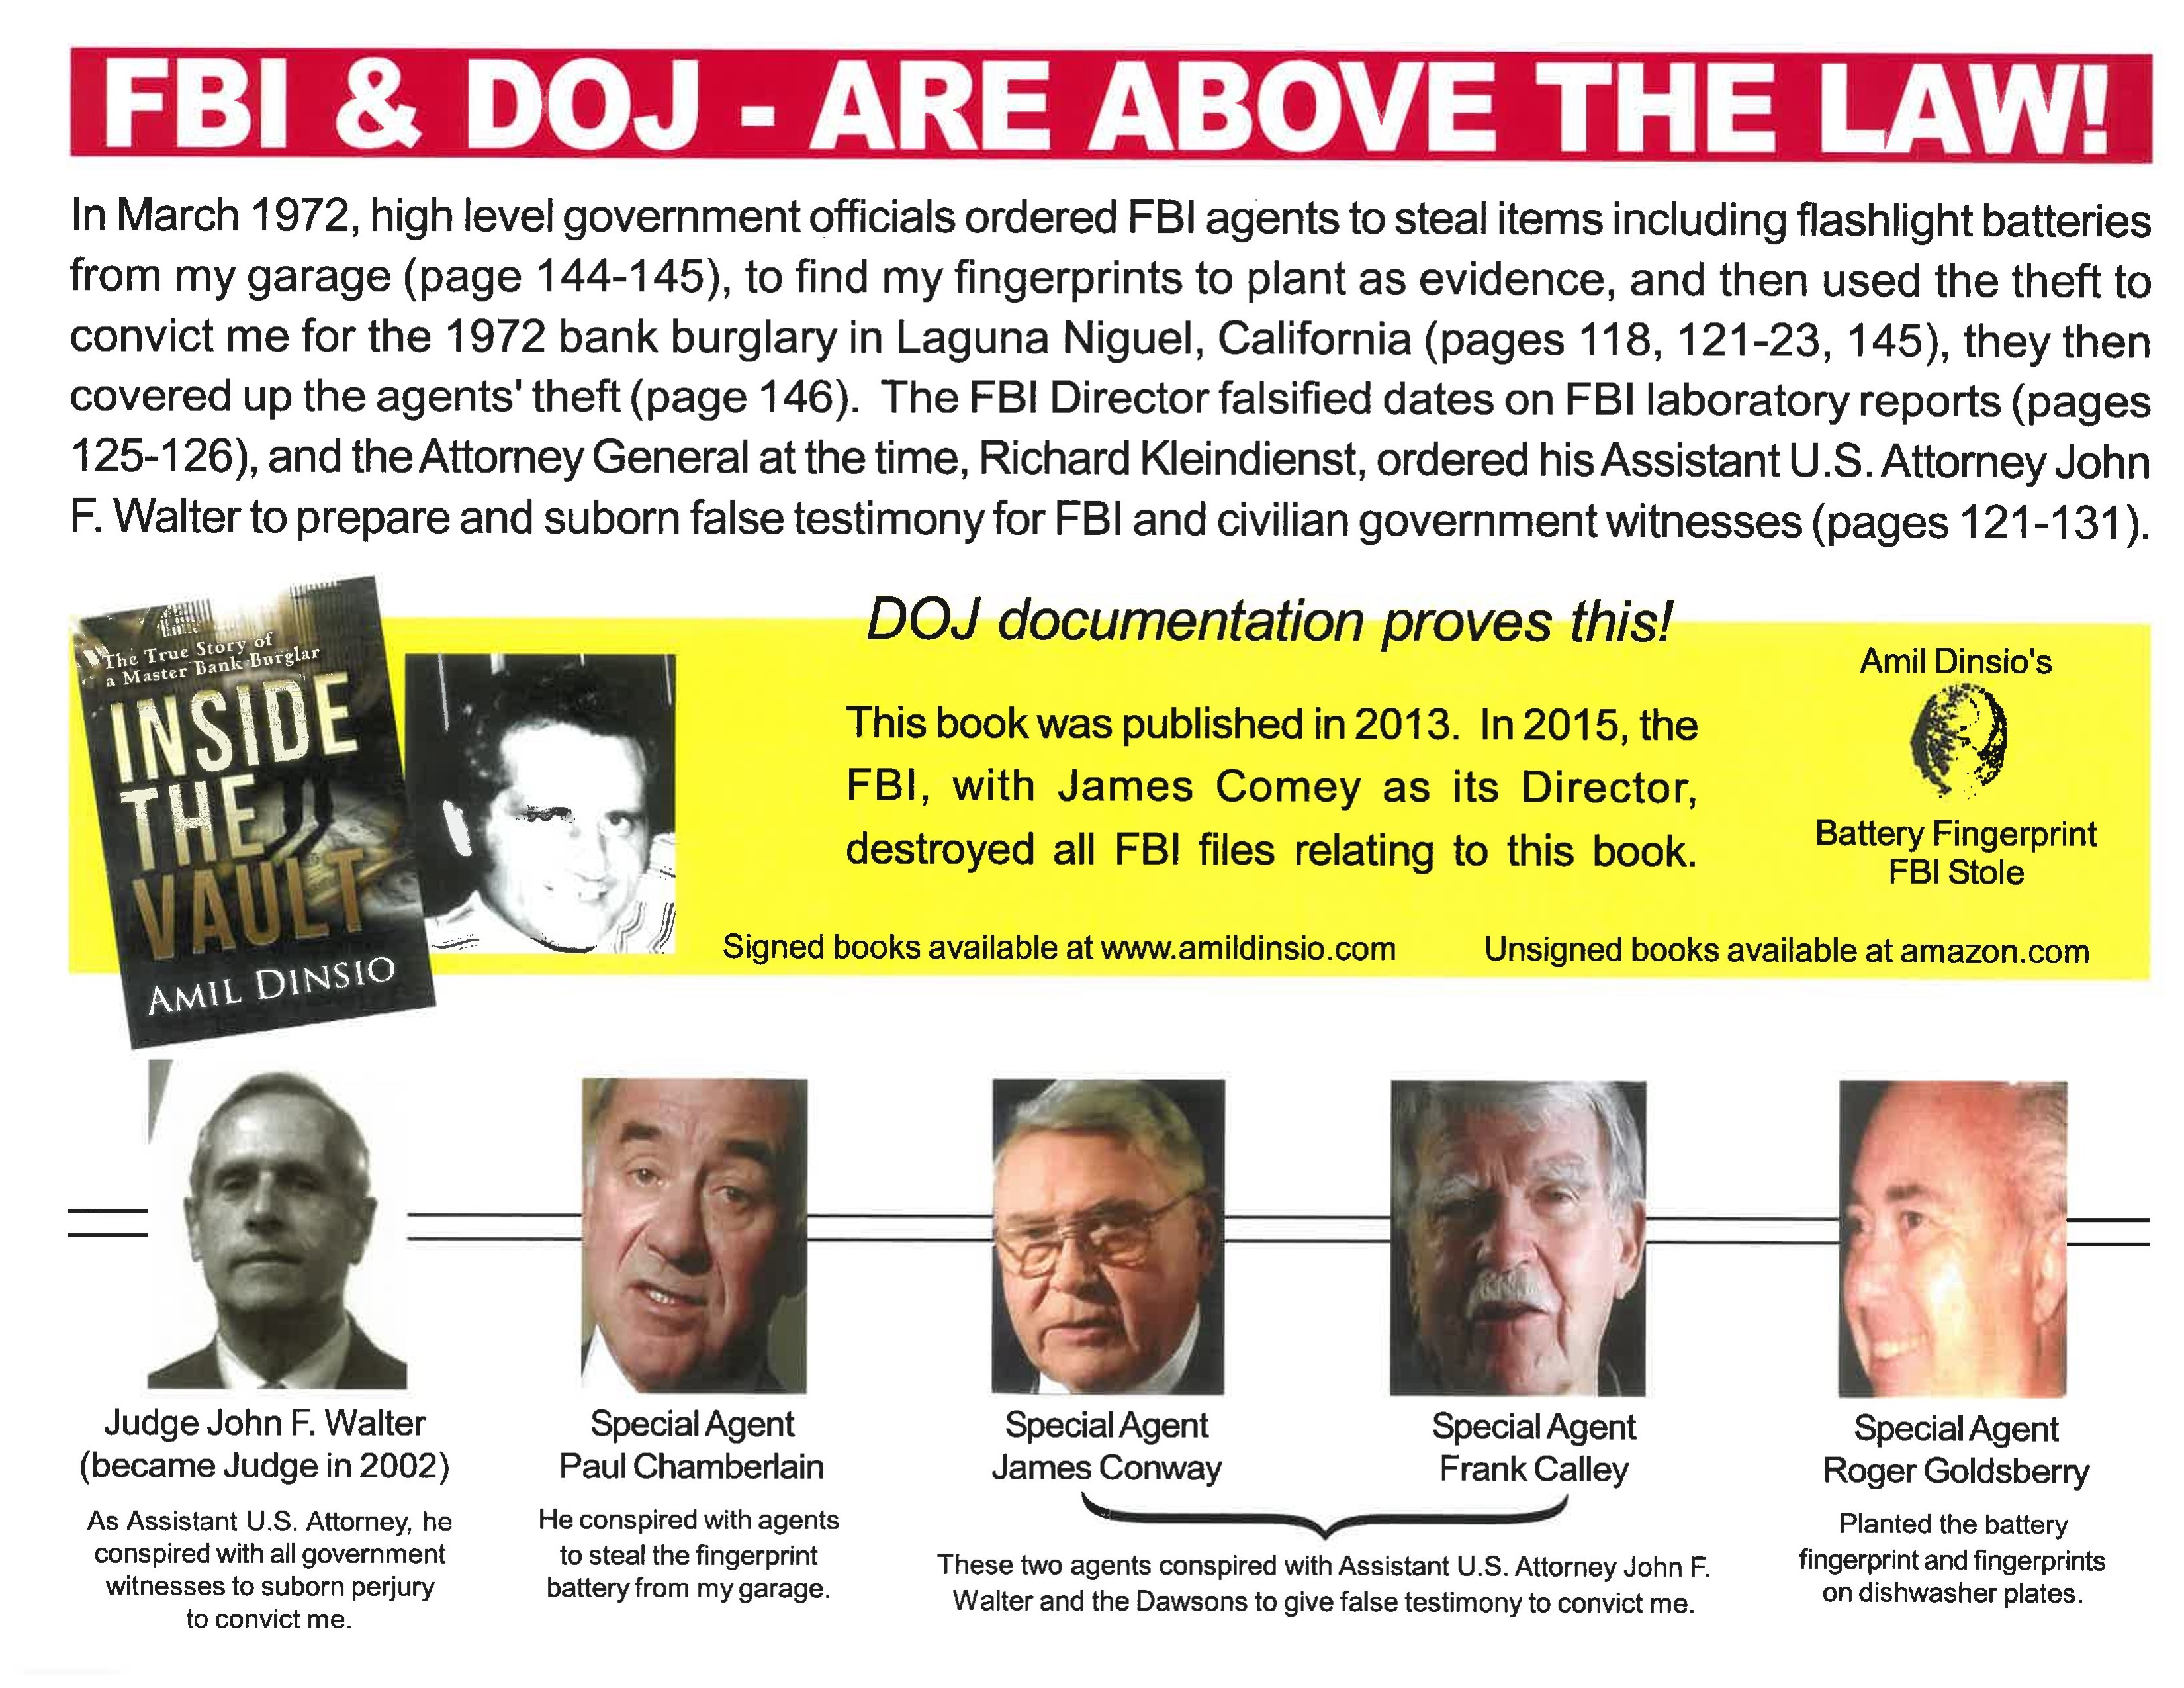 FBI and DOJ are above the law